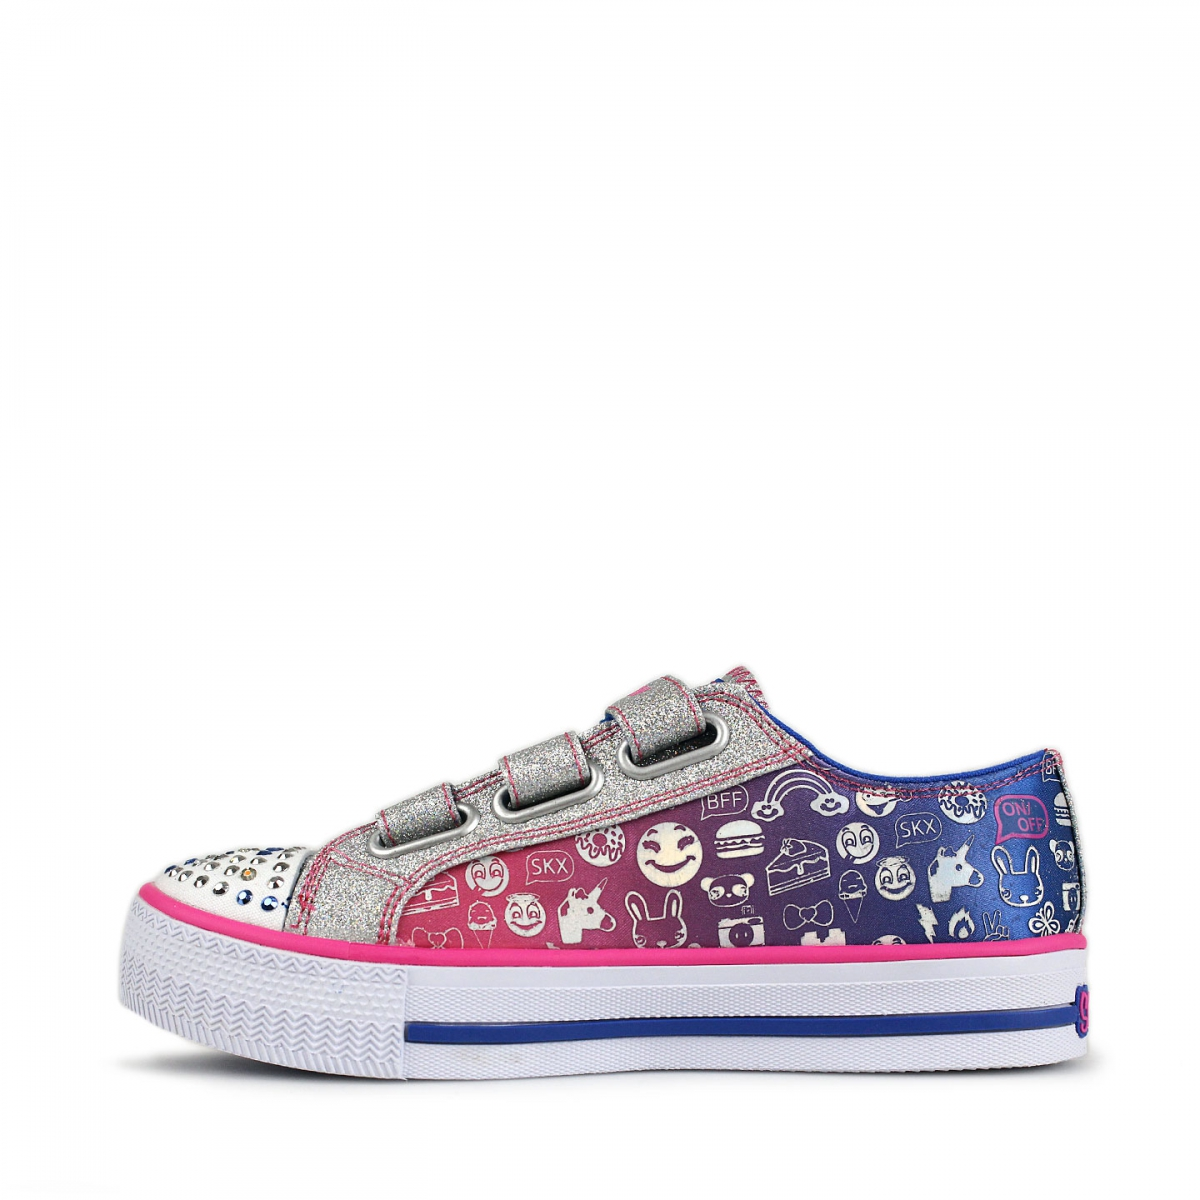 expressionista shoes baby shoes children shoes